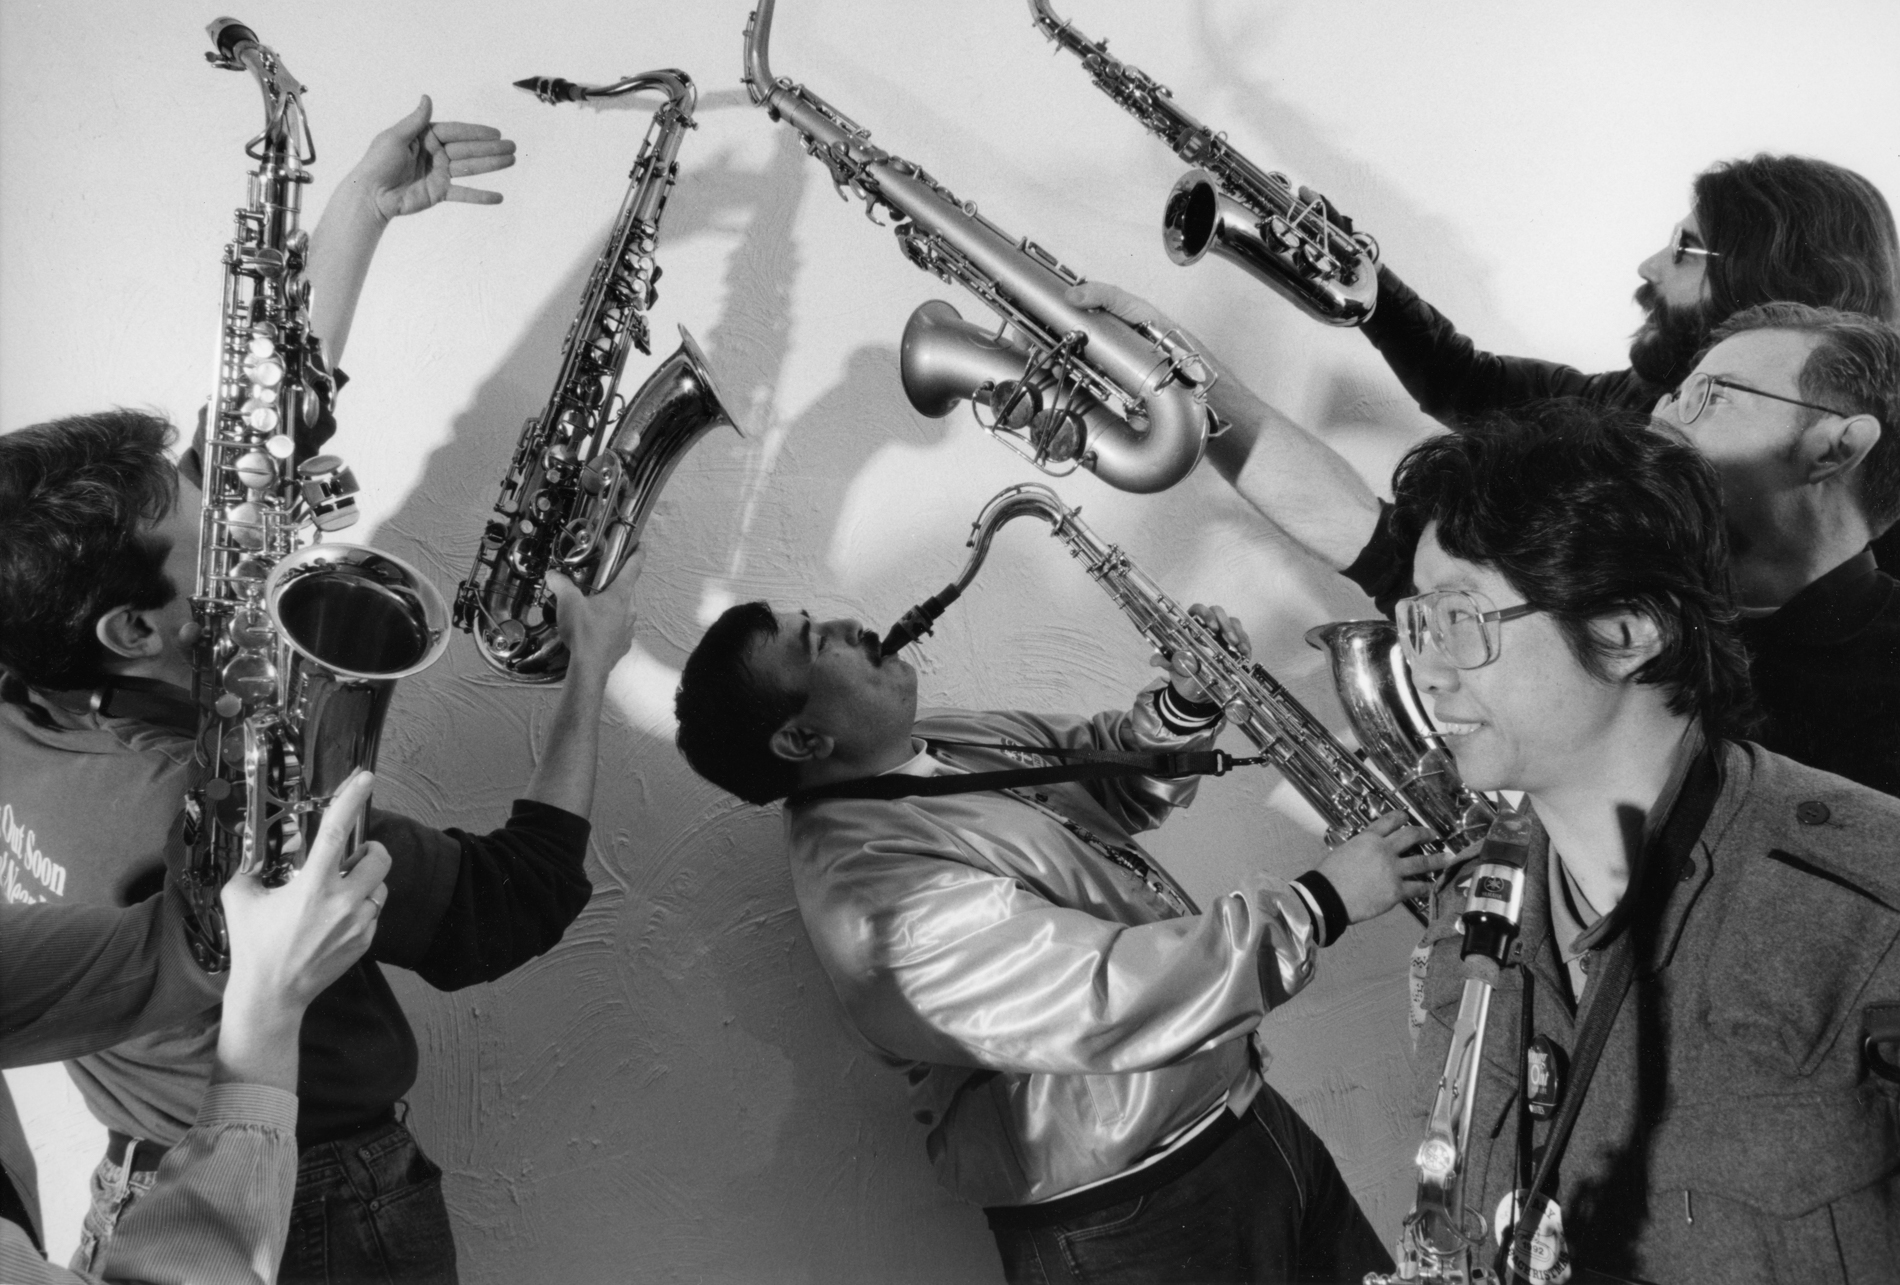 Saxophonists Ruben Estrada and Lynda Chen were among the 140 members of the Lesbian and Gay Bands of America to perform at the Inauguration of President Bill Clinton in 1993.